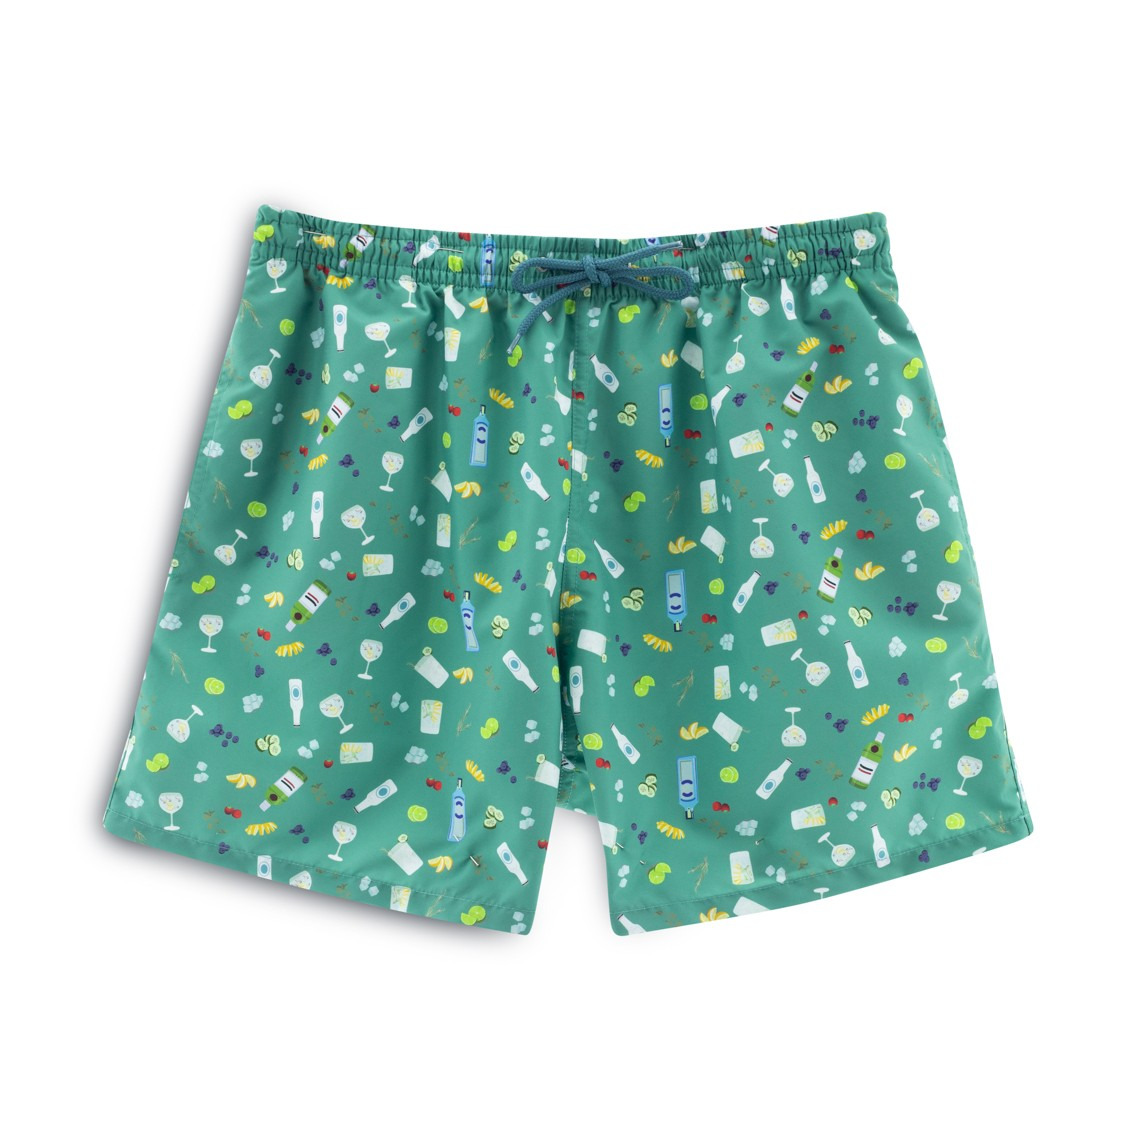 8de7981412 Soft Butt Limited Edition Green Gin and Tonic Swim Short zoom